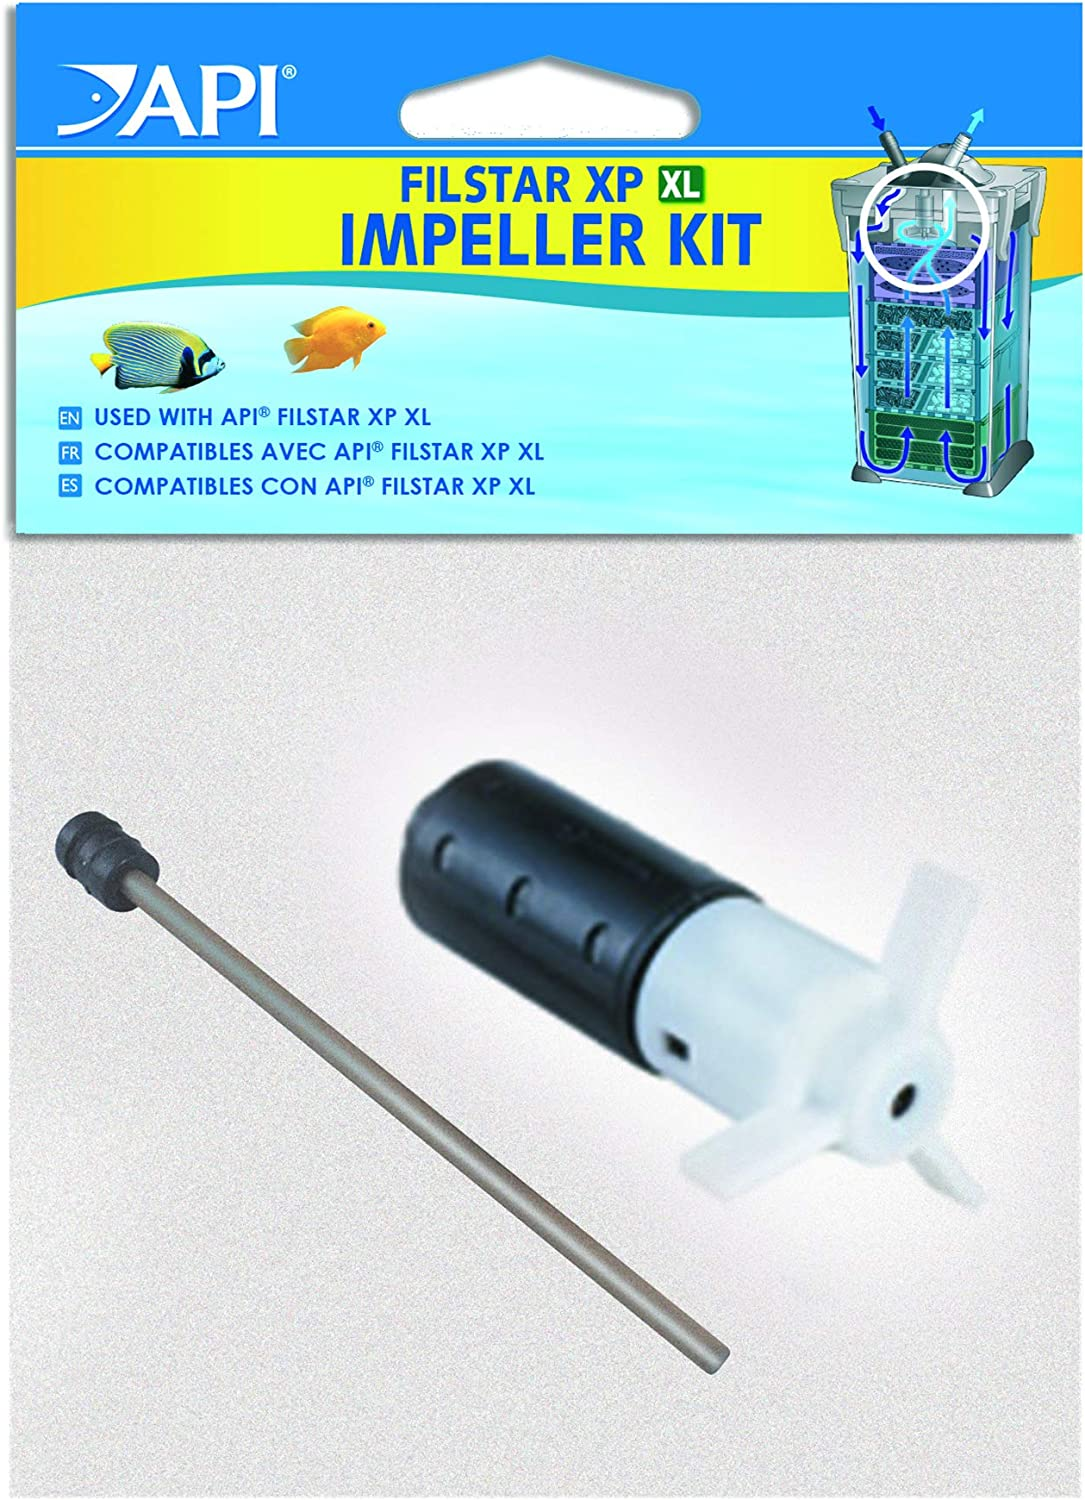 API FILSTAR XP Canister Filter Spare Parts Such as Canister Clips, Quick Disconnect, Gasket, impellers and More